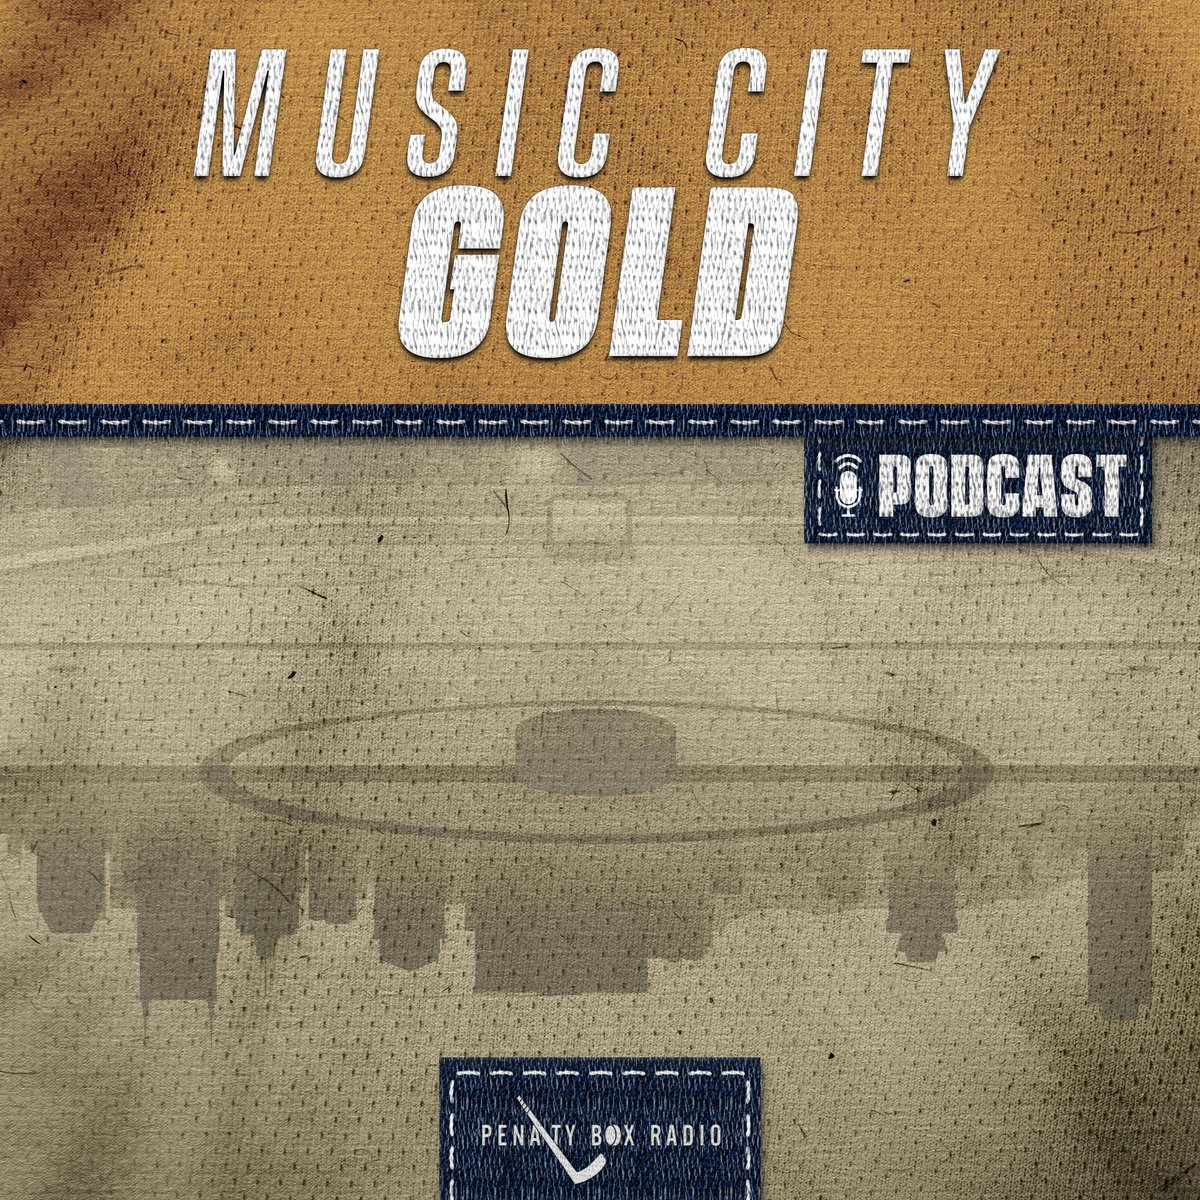 New episode of @MusicCityGold with @kylehancock @seedandrum & @MattBain31   Did your team make a move or stand pat yesterday? The guys sit down and talk some of the biggest trades which took place on #NHLTradeDeadline day.  https://t.co/5WUHmsQUlb https://t.co/XpcjUl9yvI